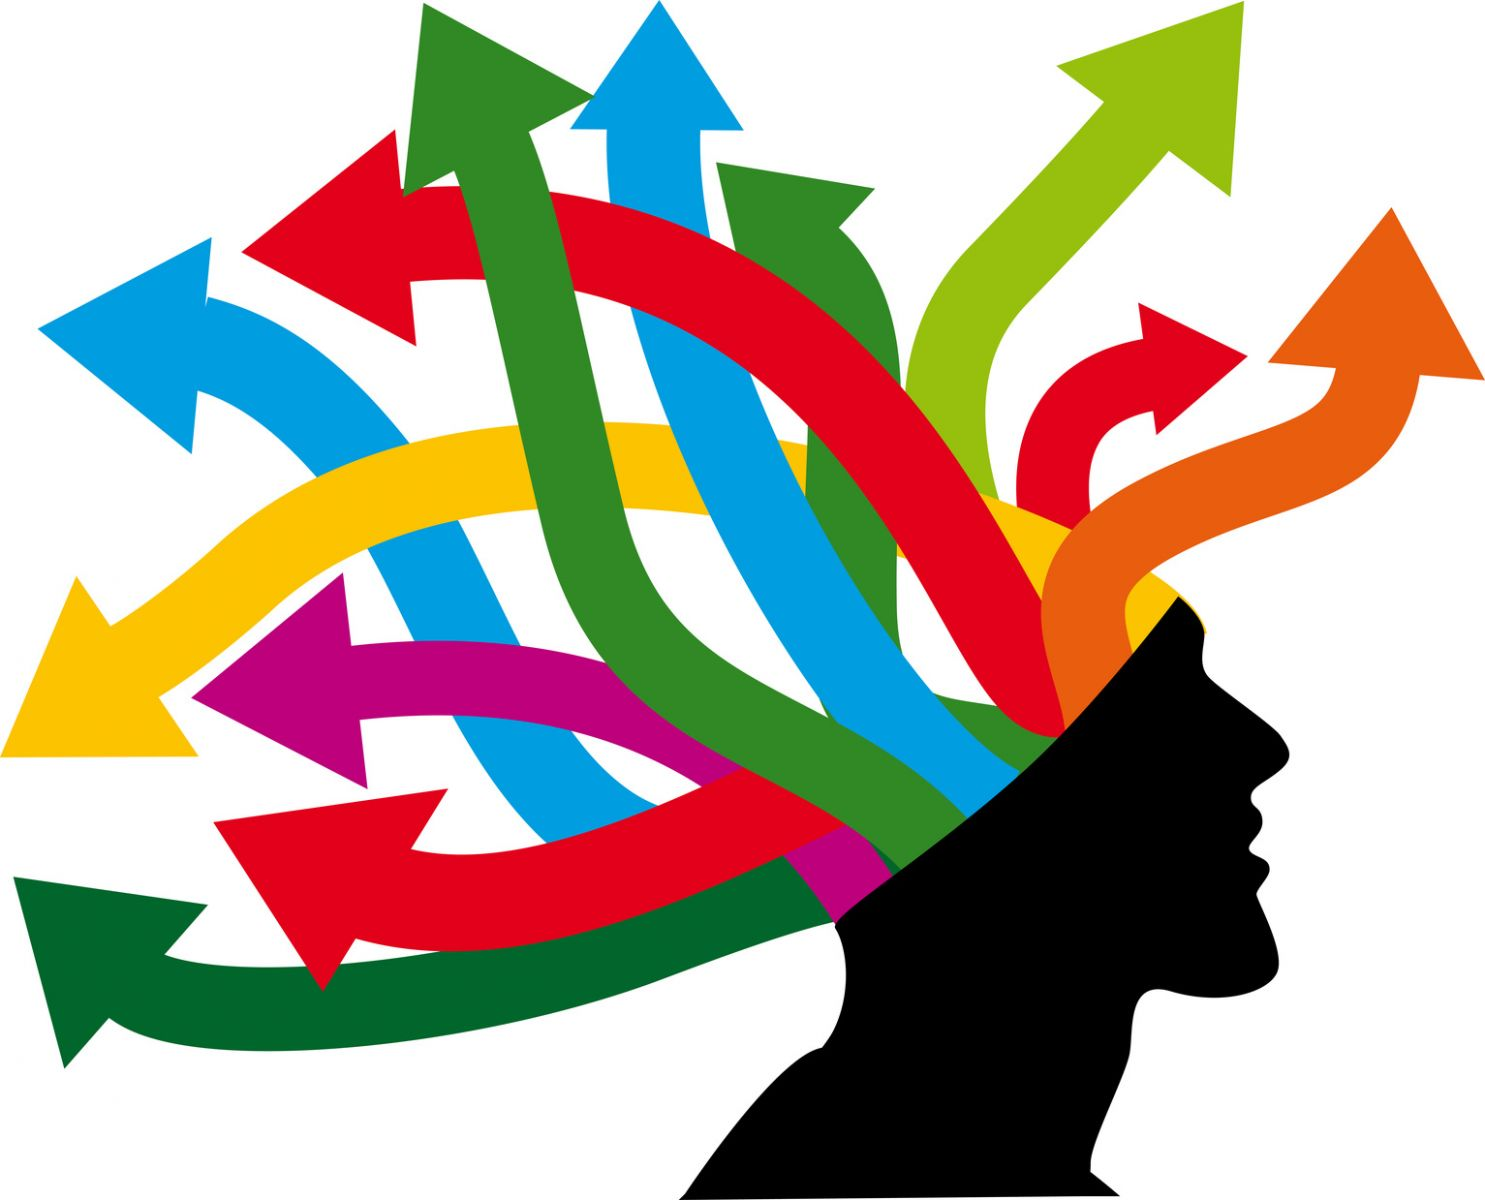 The flow of ideas images and